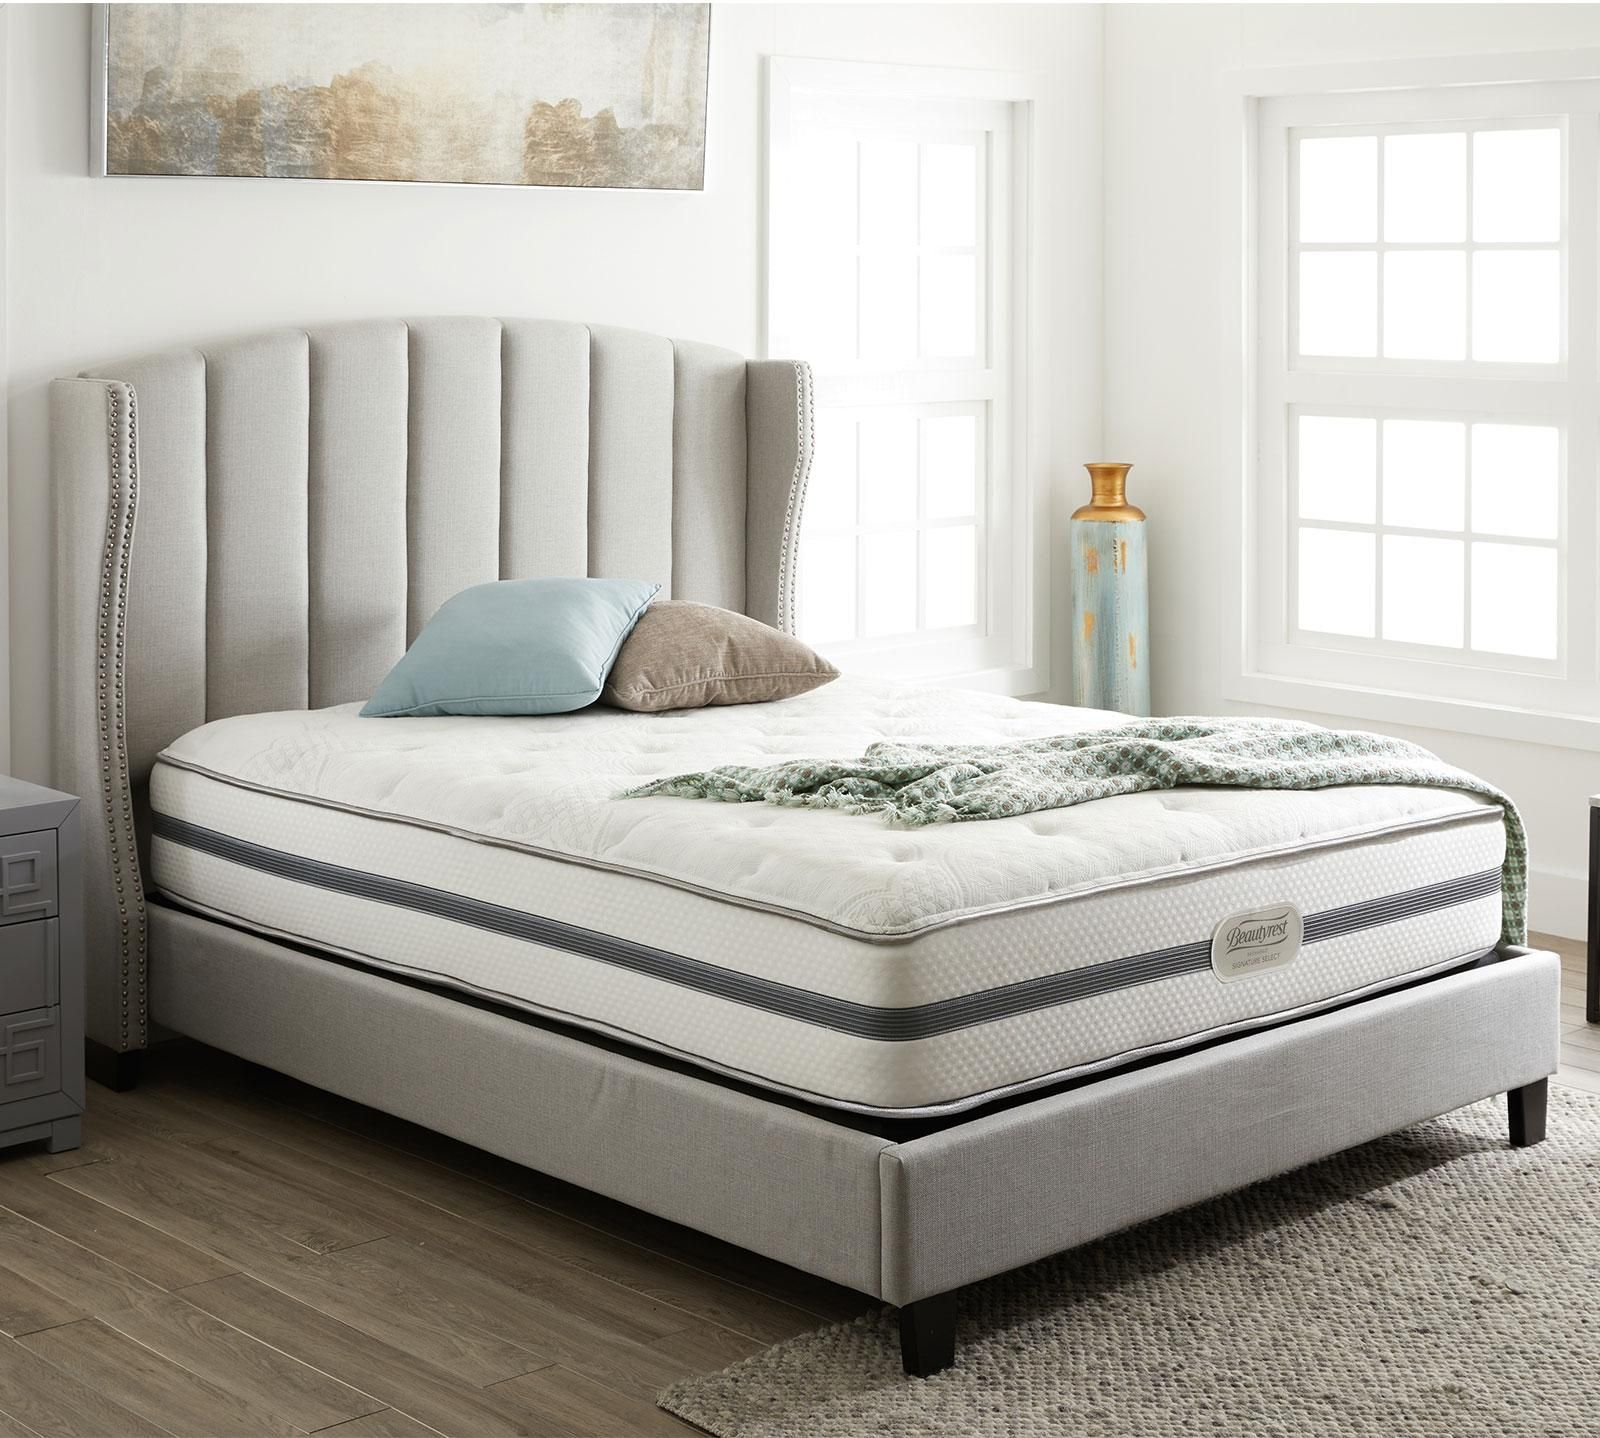 Shop for your Simmons Beautyrest Recharge Ashaway 11